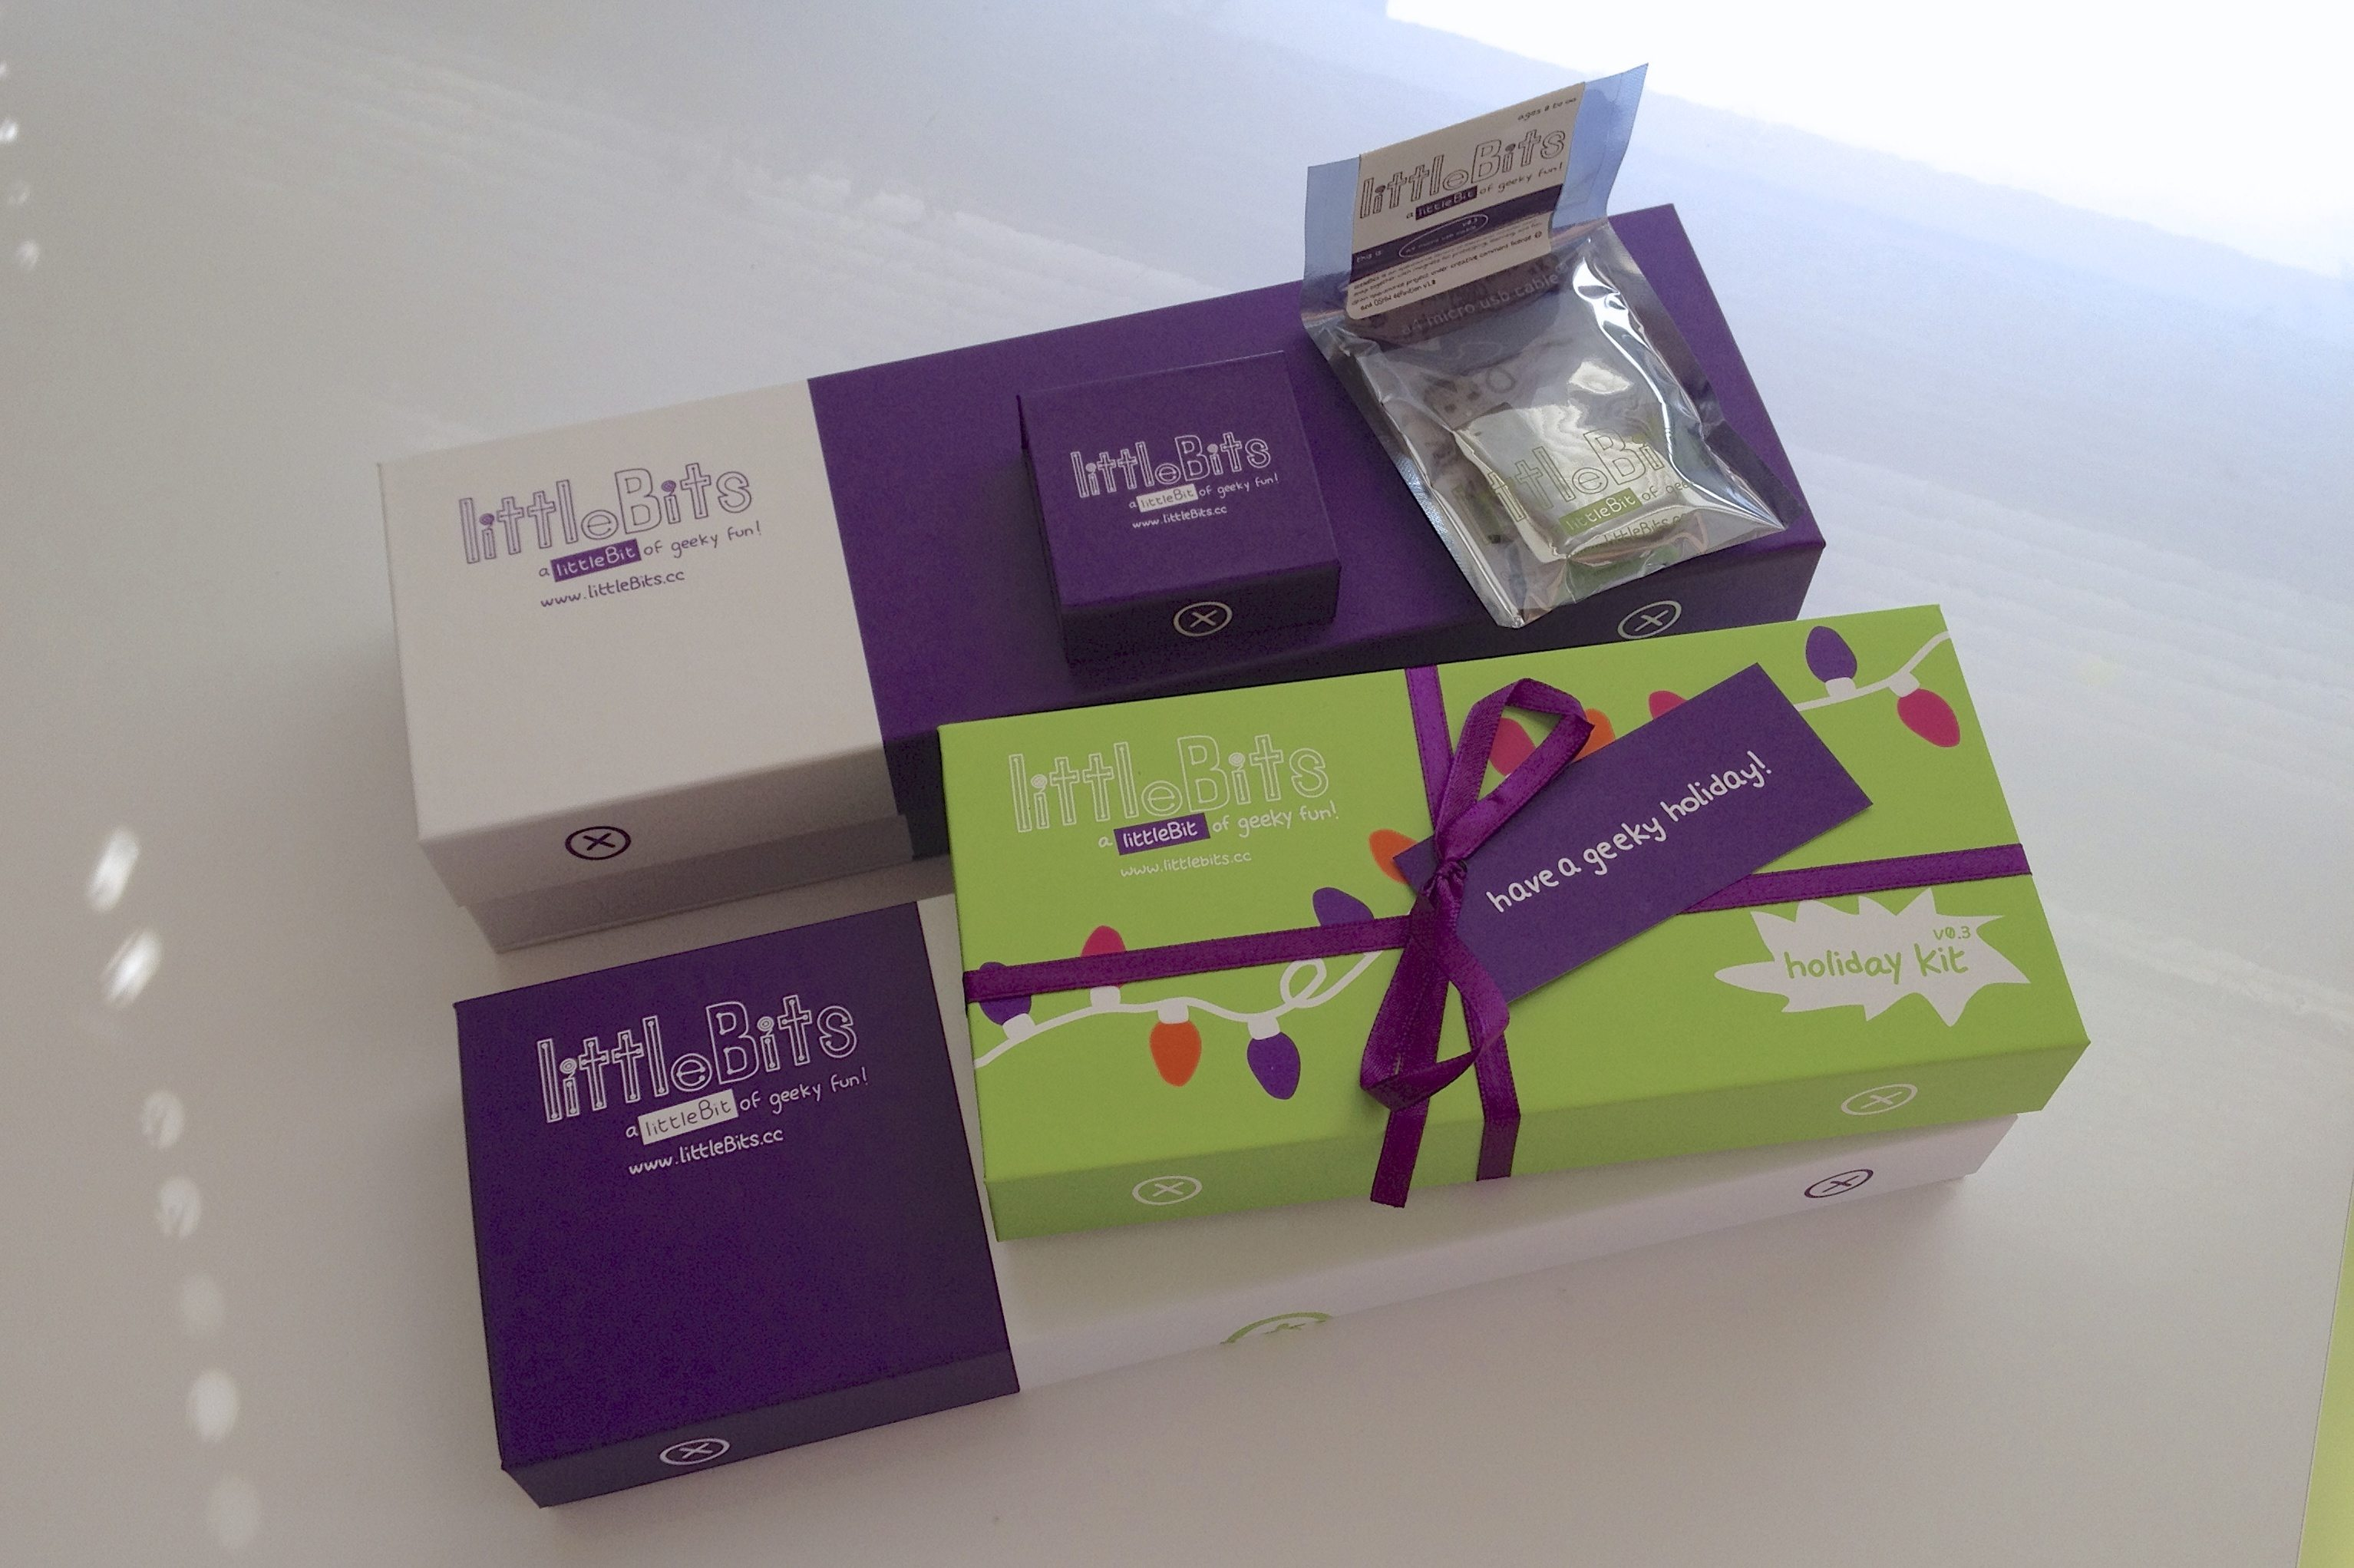 littleBits of Geeky Fun!